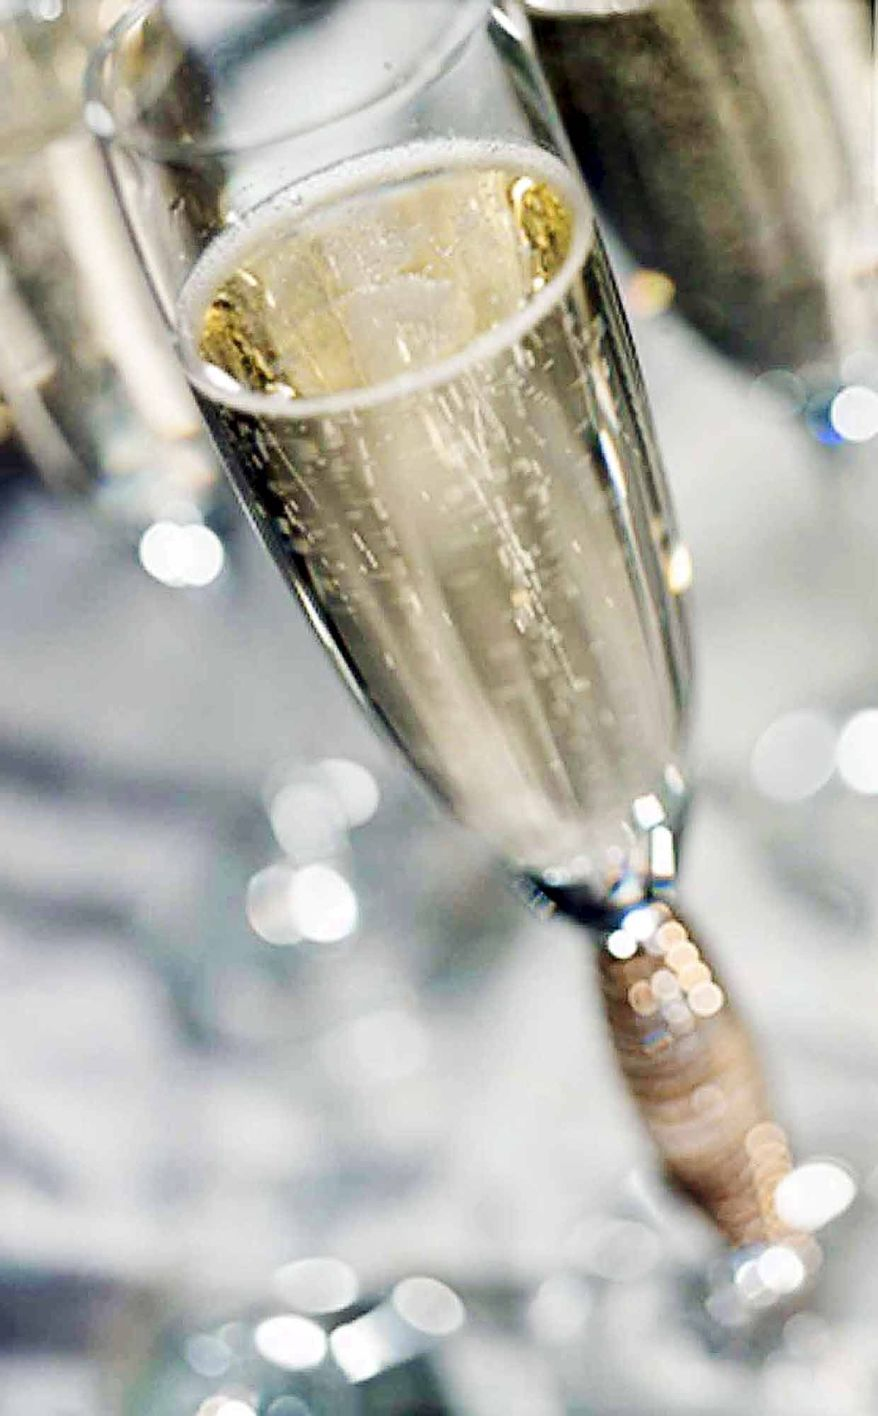 Champagne is a symbol of luxury, but sparkling values can be found.